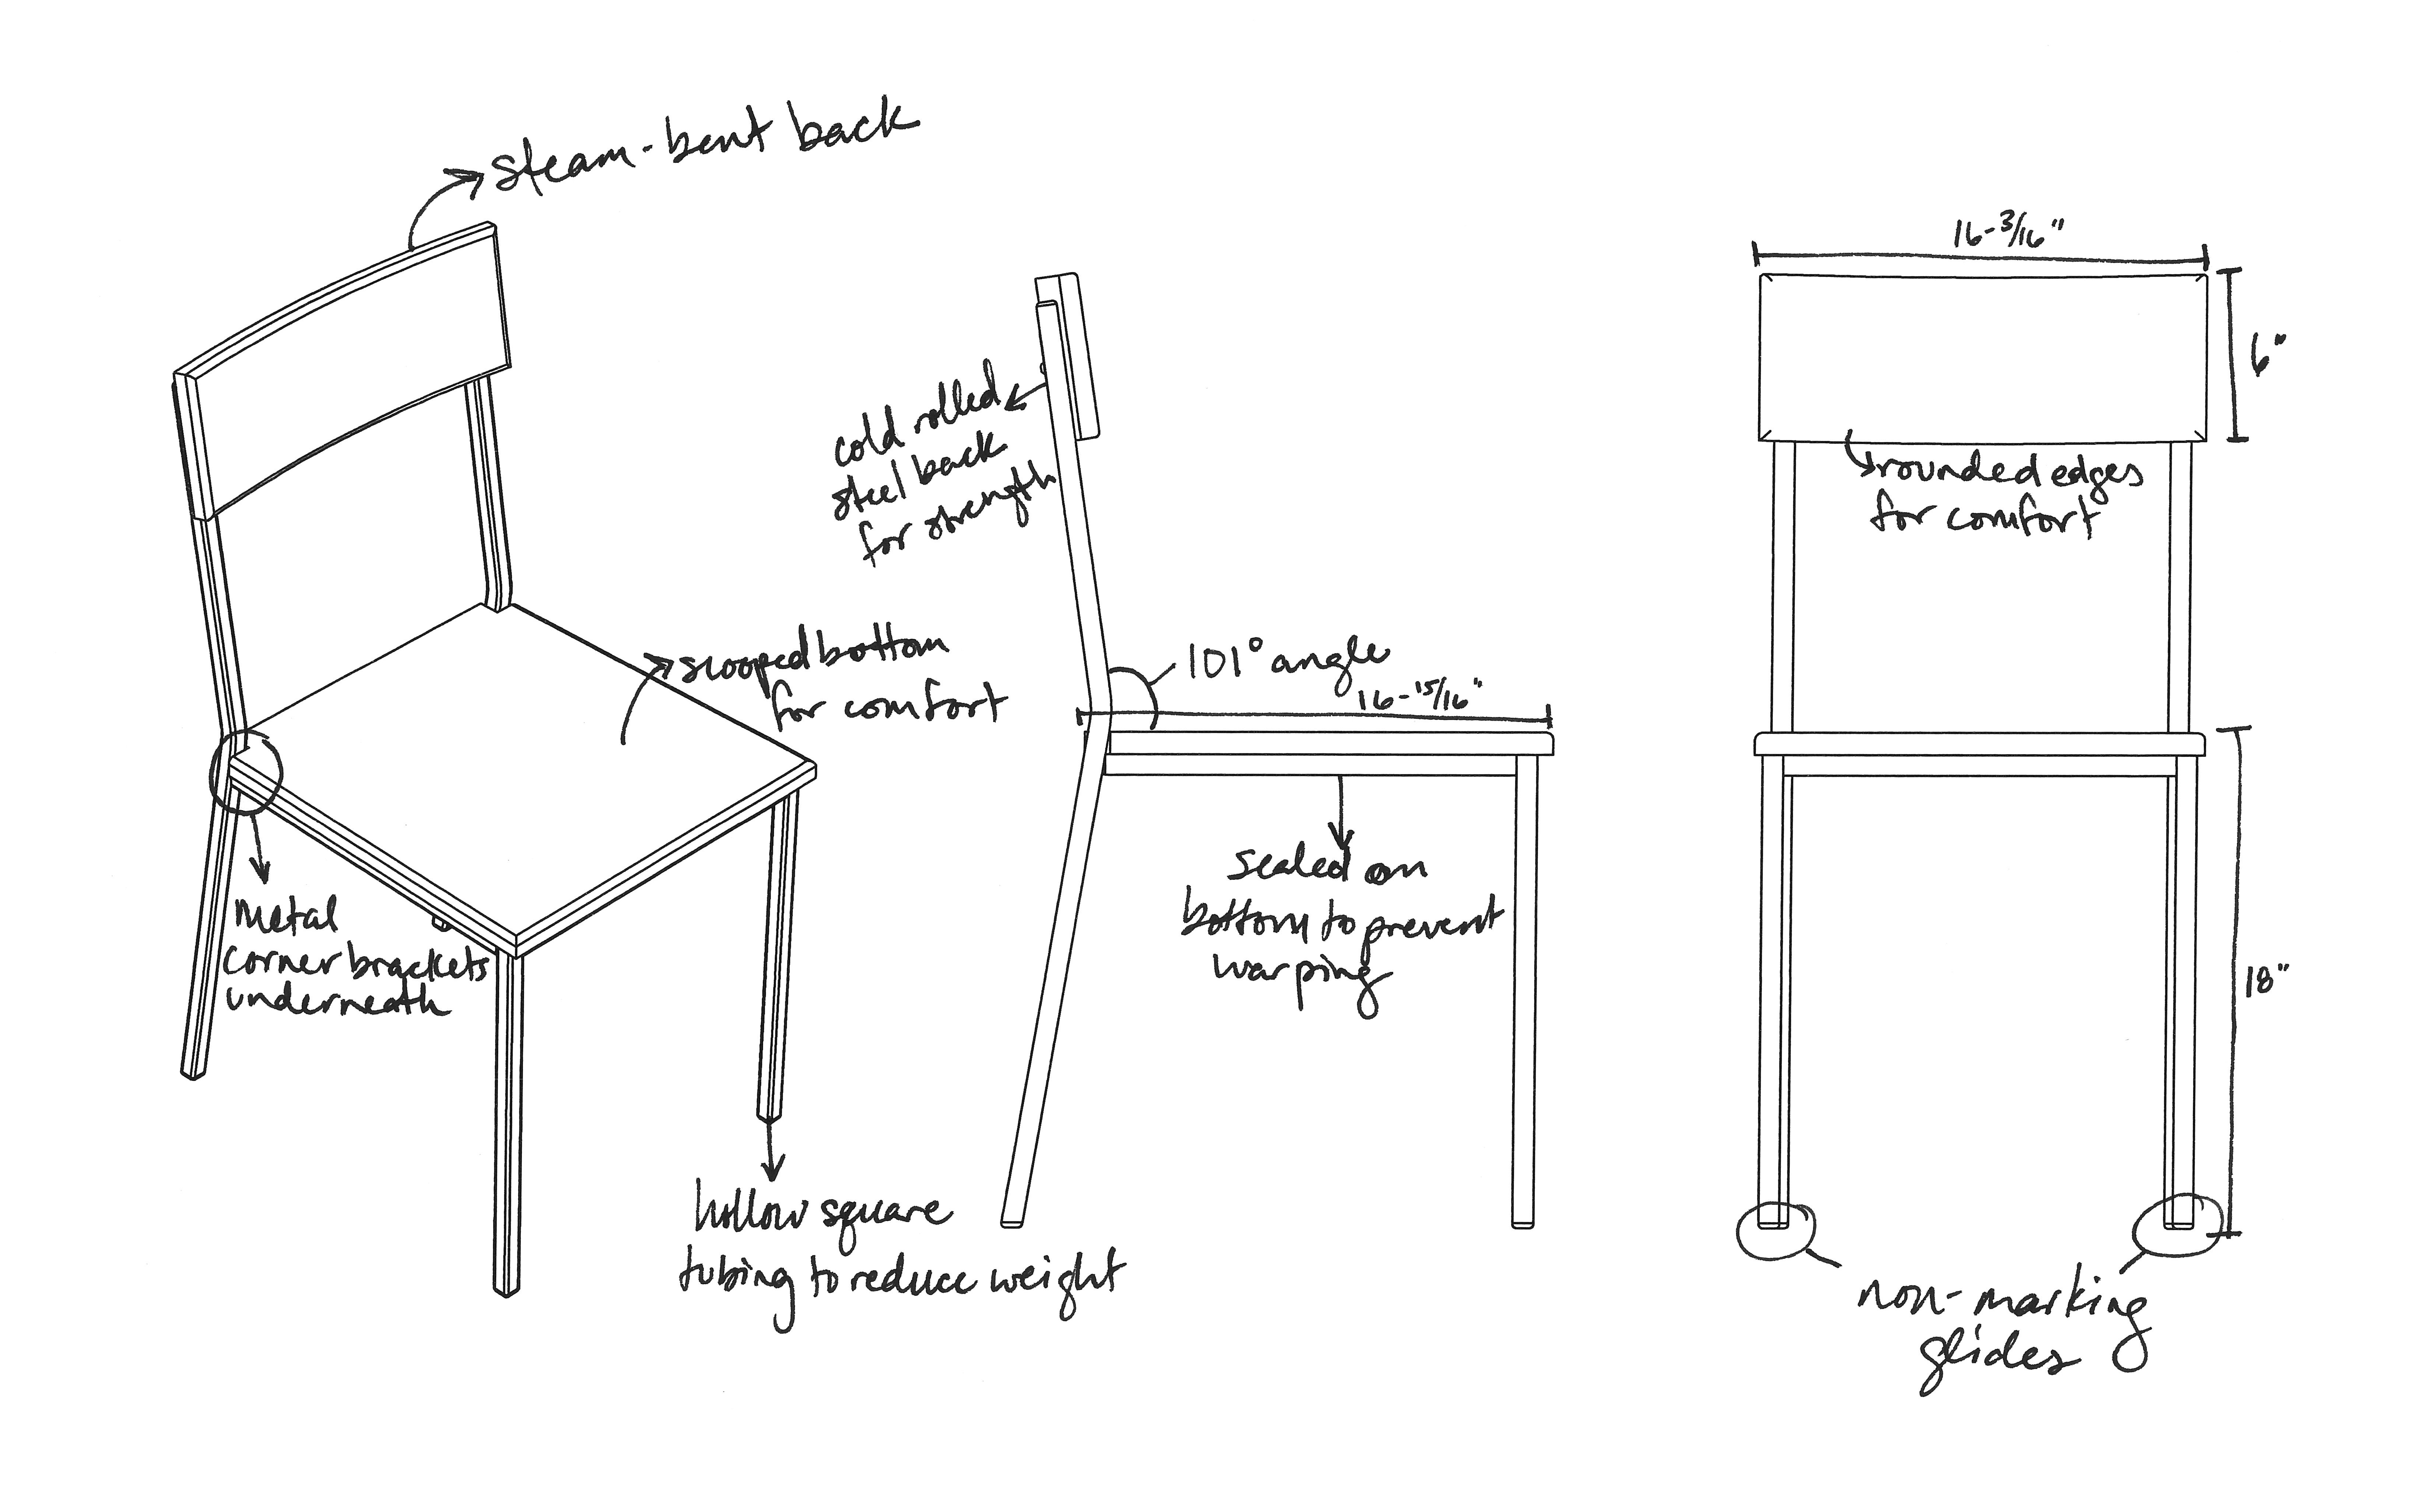 Transit Chair Design Sketch